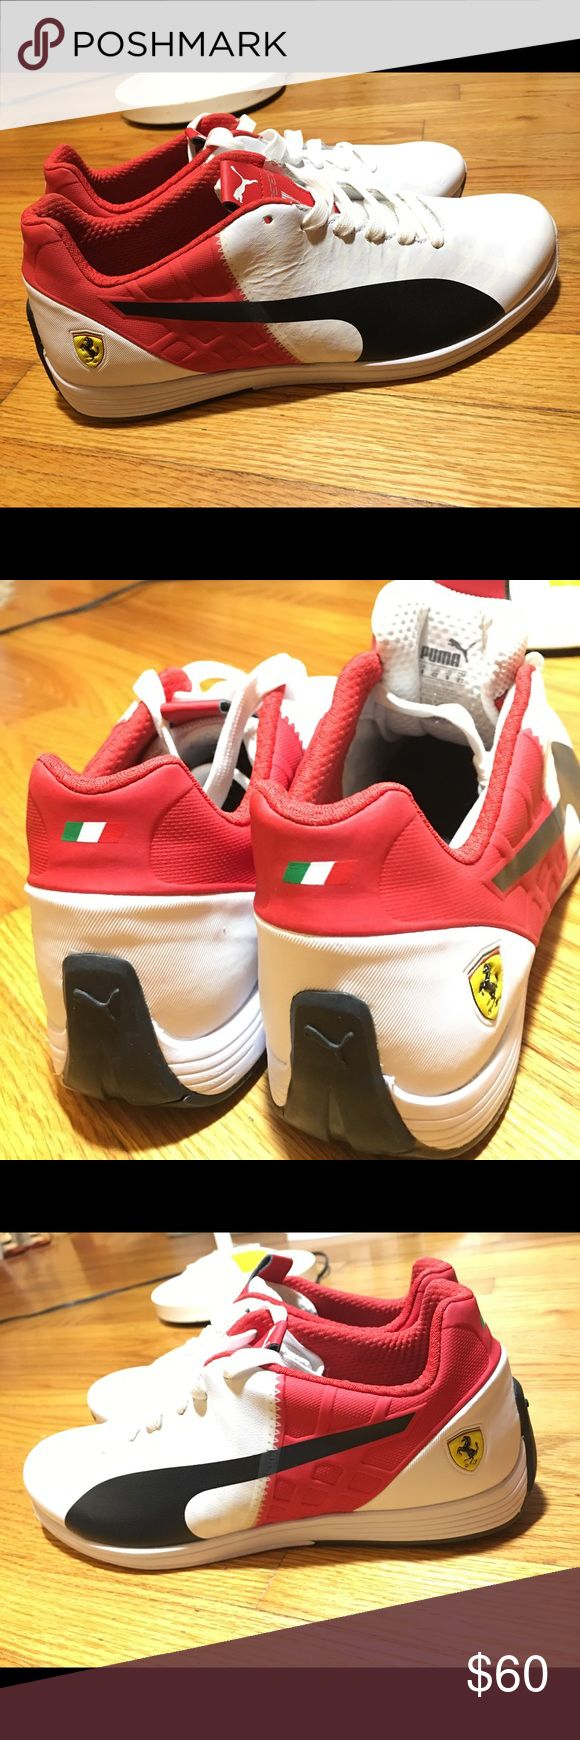 Puma shoes Brand new without box size 9 Puma Ferrari shoes Puma Shoes Sneakers